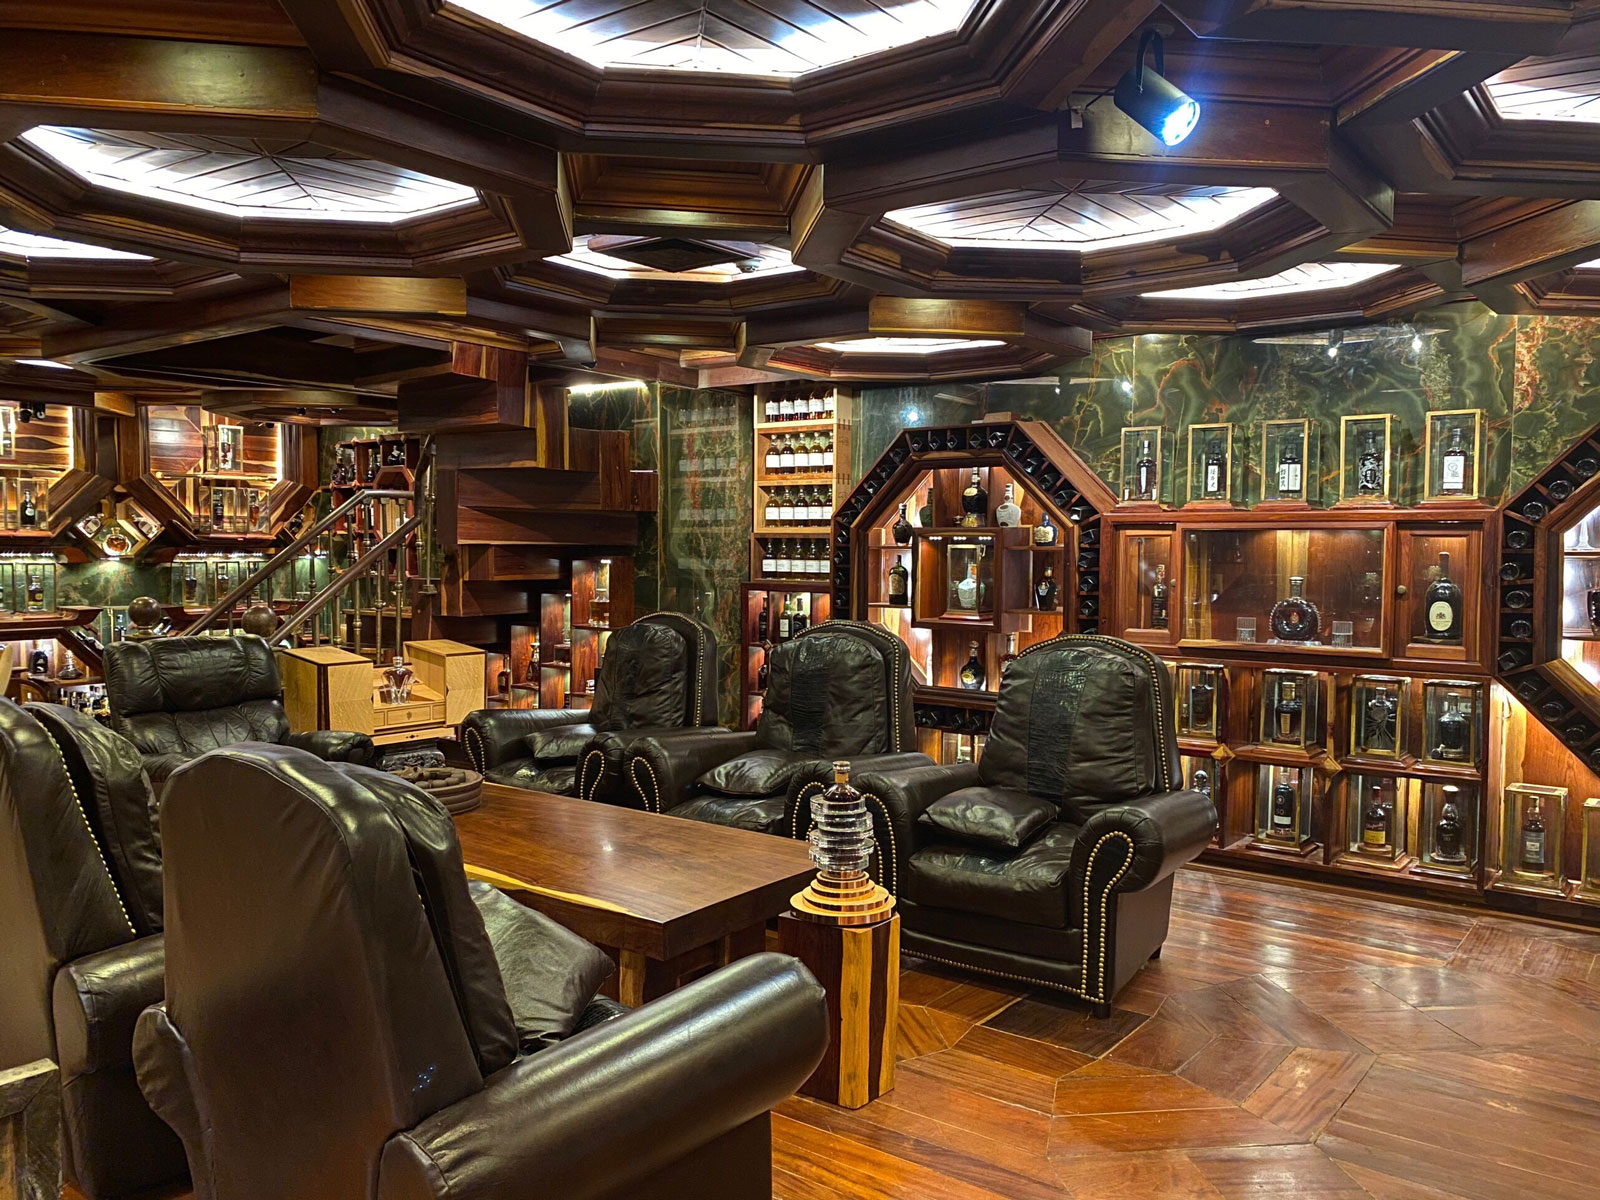 world-record-whiskey-collection-4-FT-BLOG1119.jpg